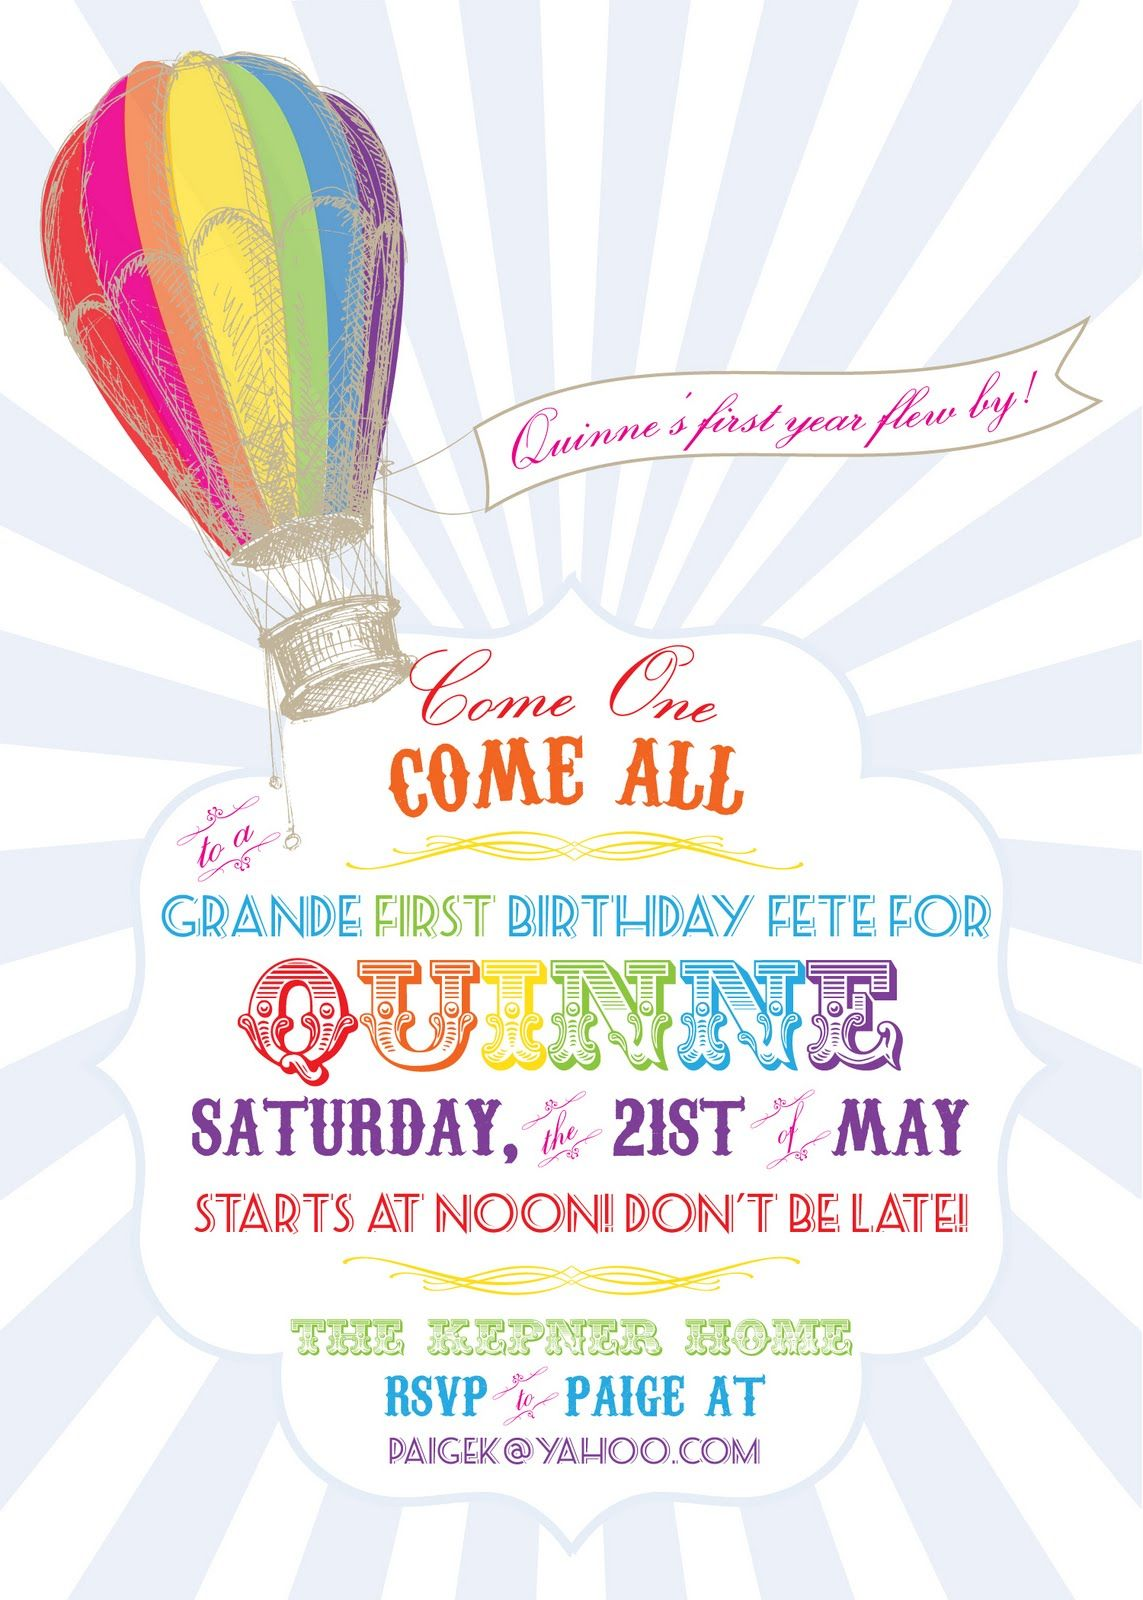 Hot Air Balloon Party Invitations | My LiL Loves 1st B-Day | Pinterest